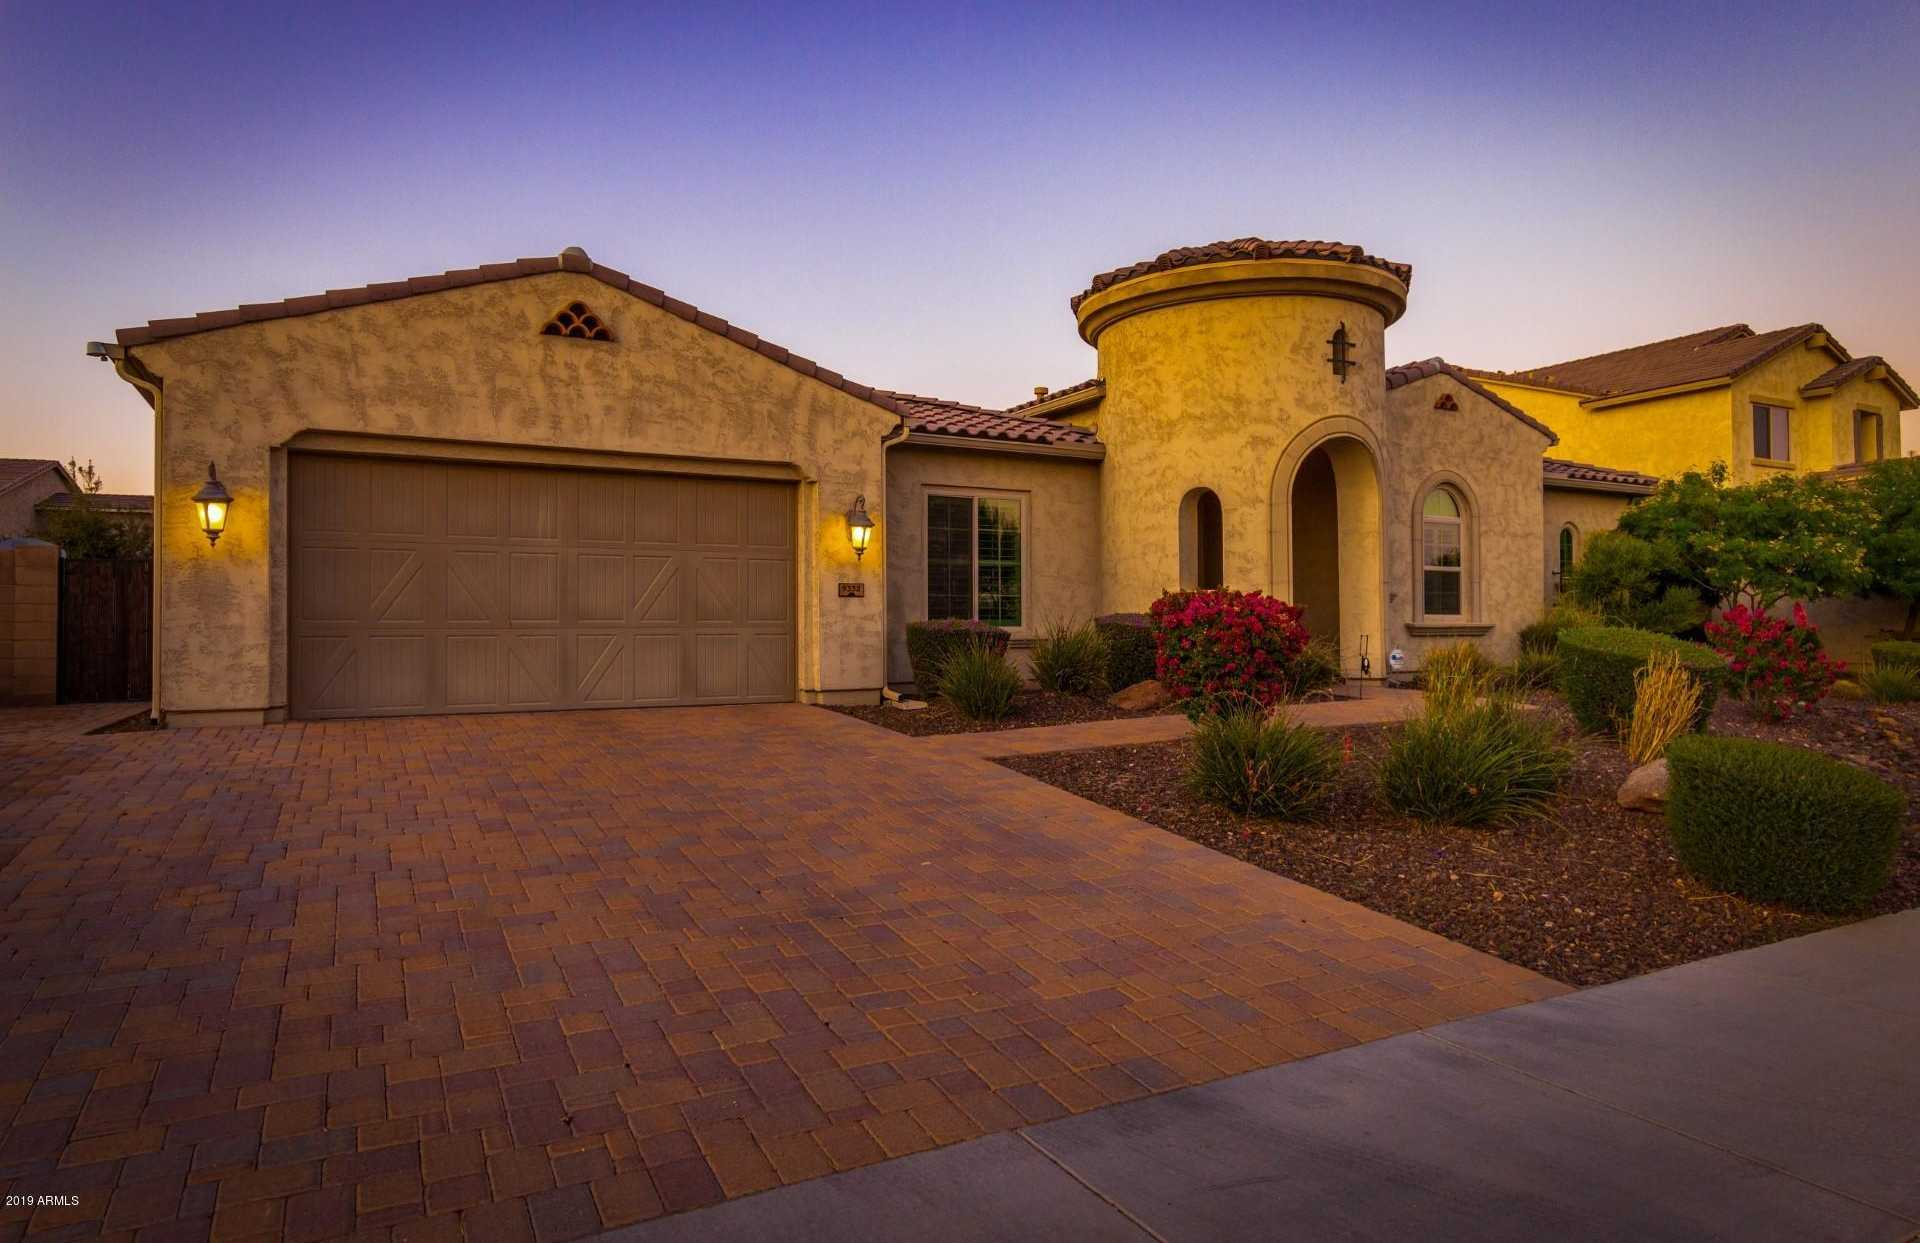 $750,000 - 4Br/4Ba - Home for Sale in Meadows Parcel 4a, Peoria